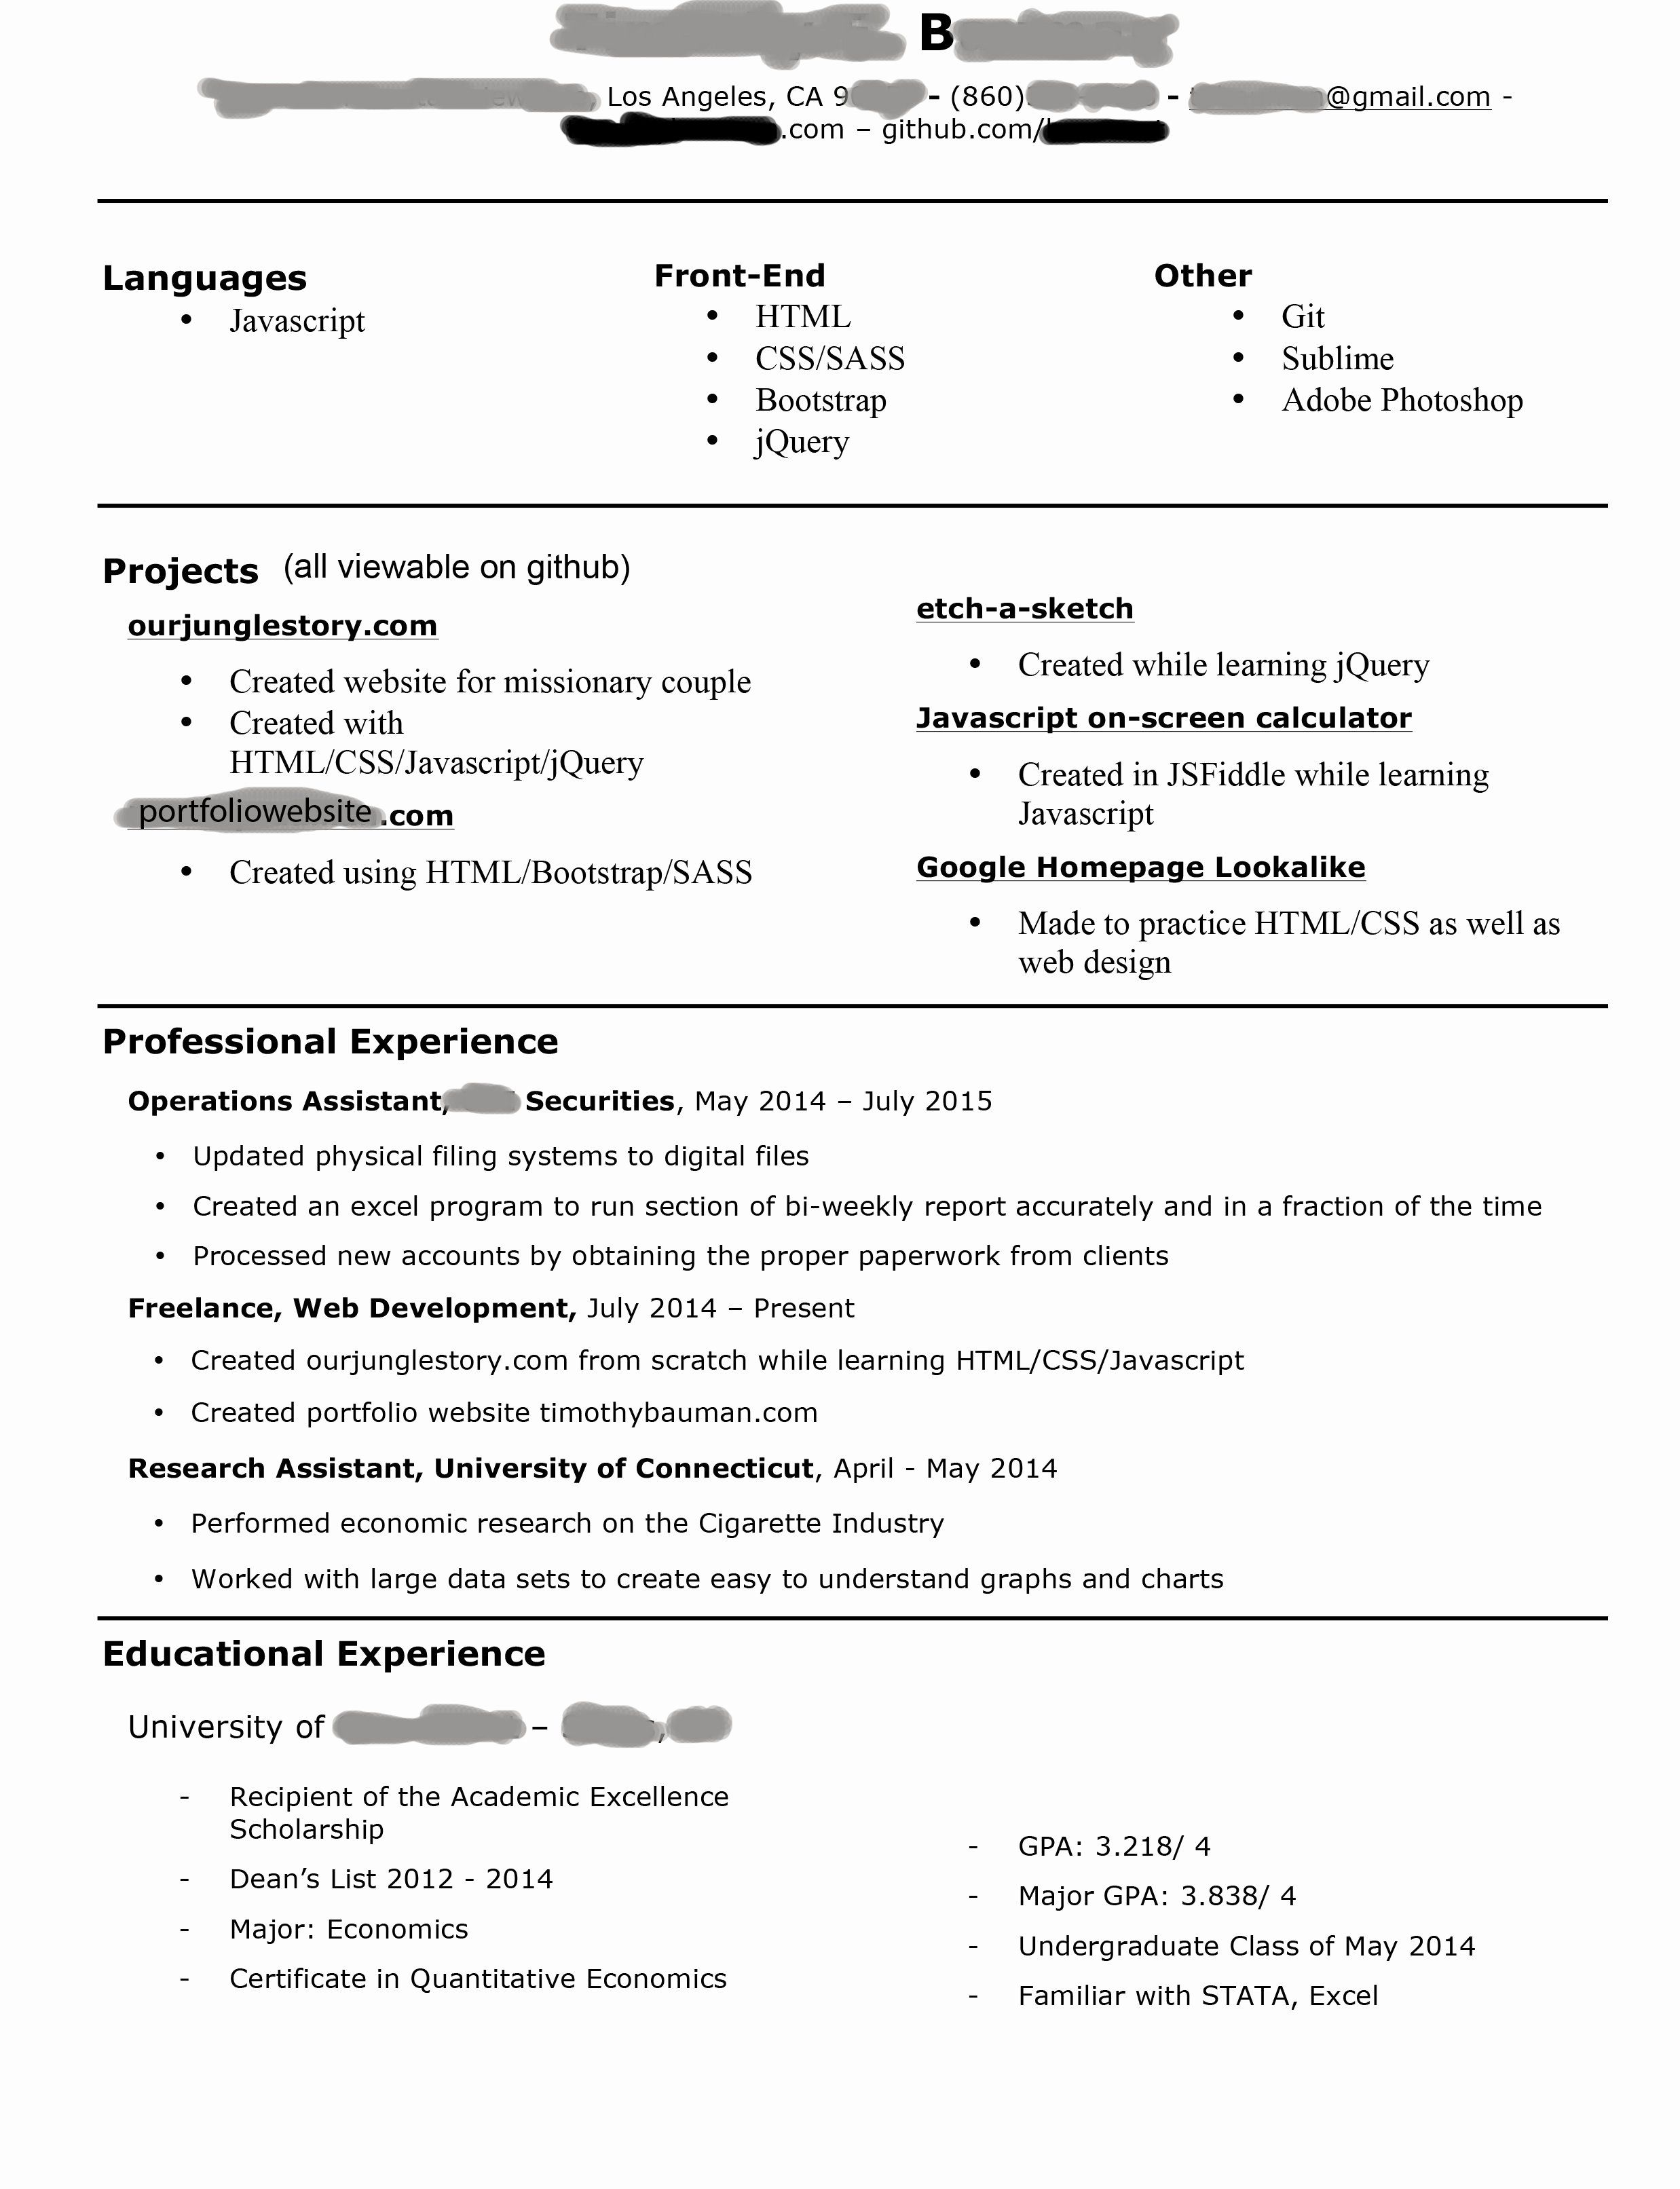 How to Write a Perfect Resume Objective (Resume Examples